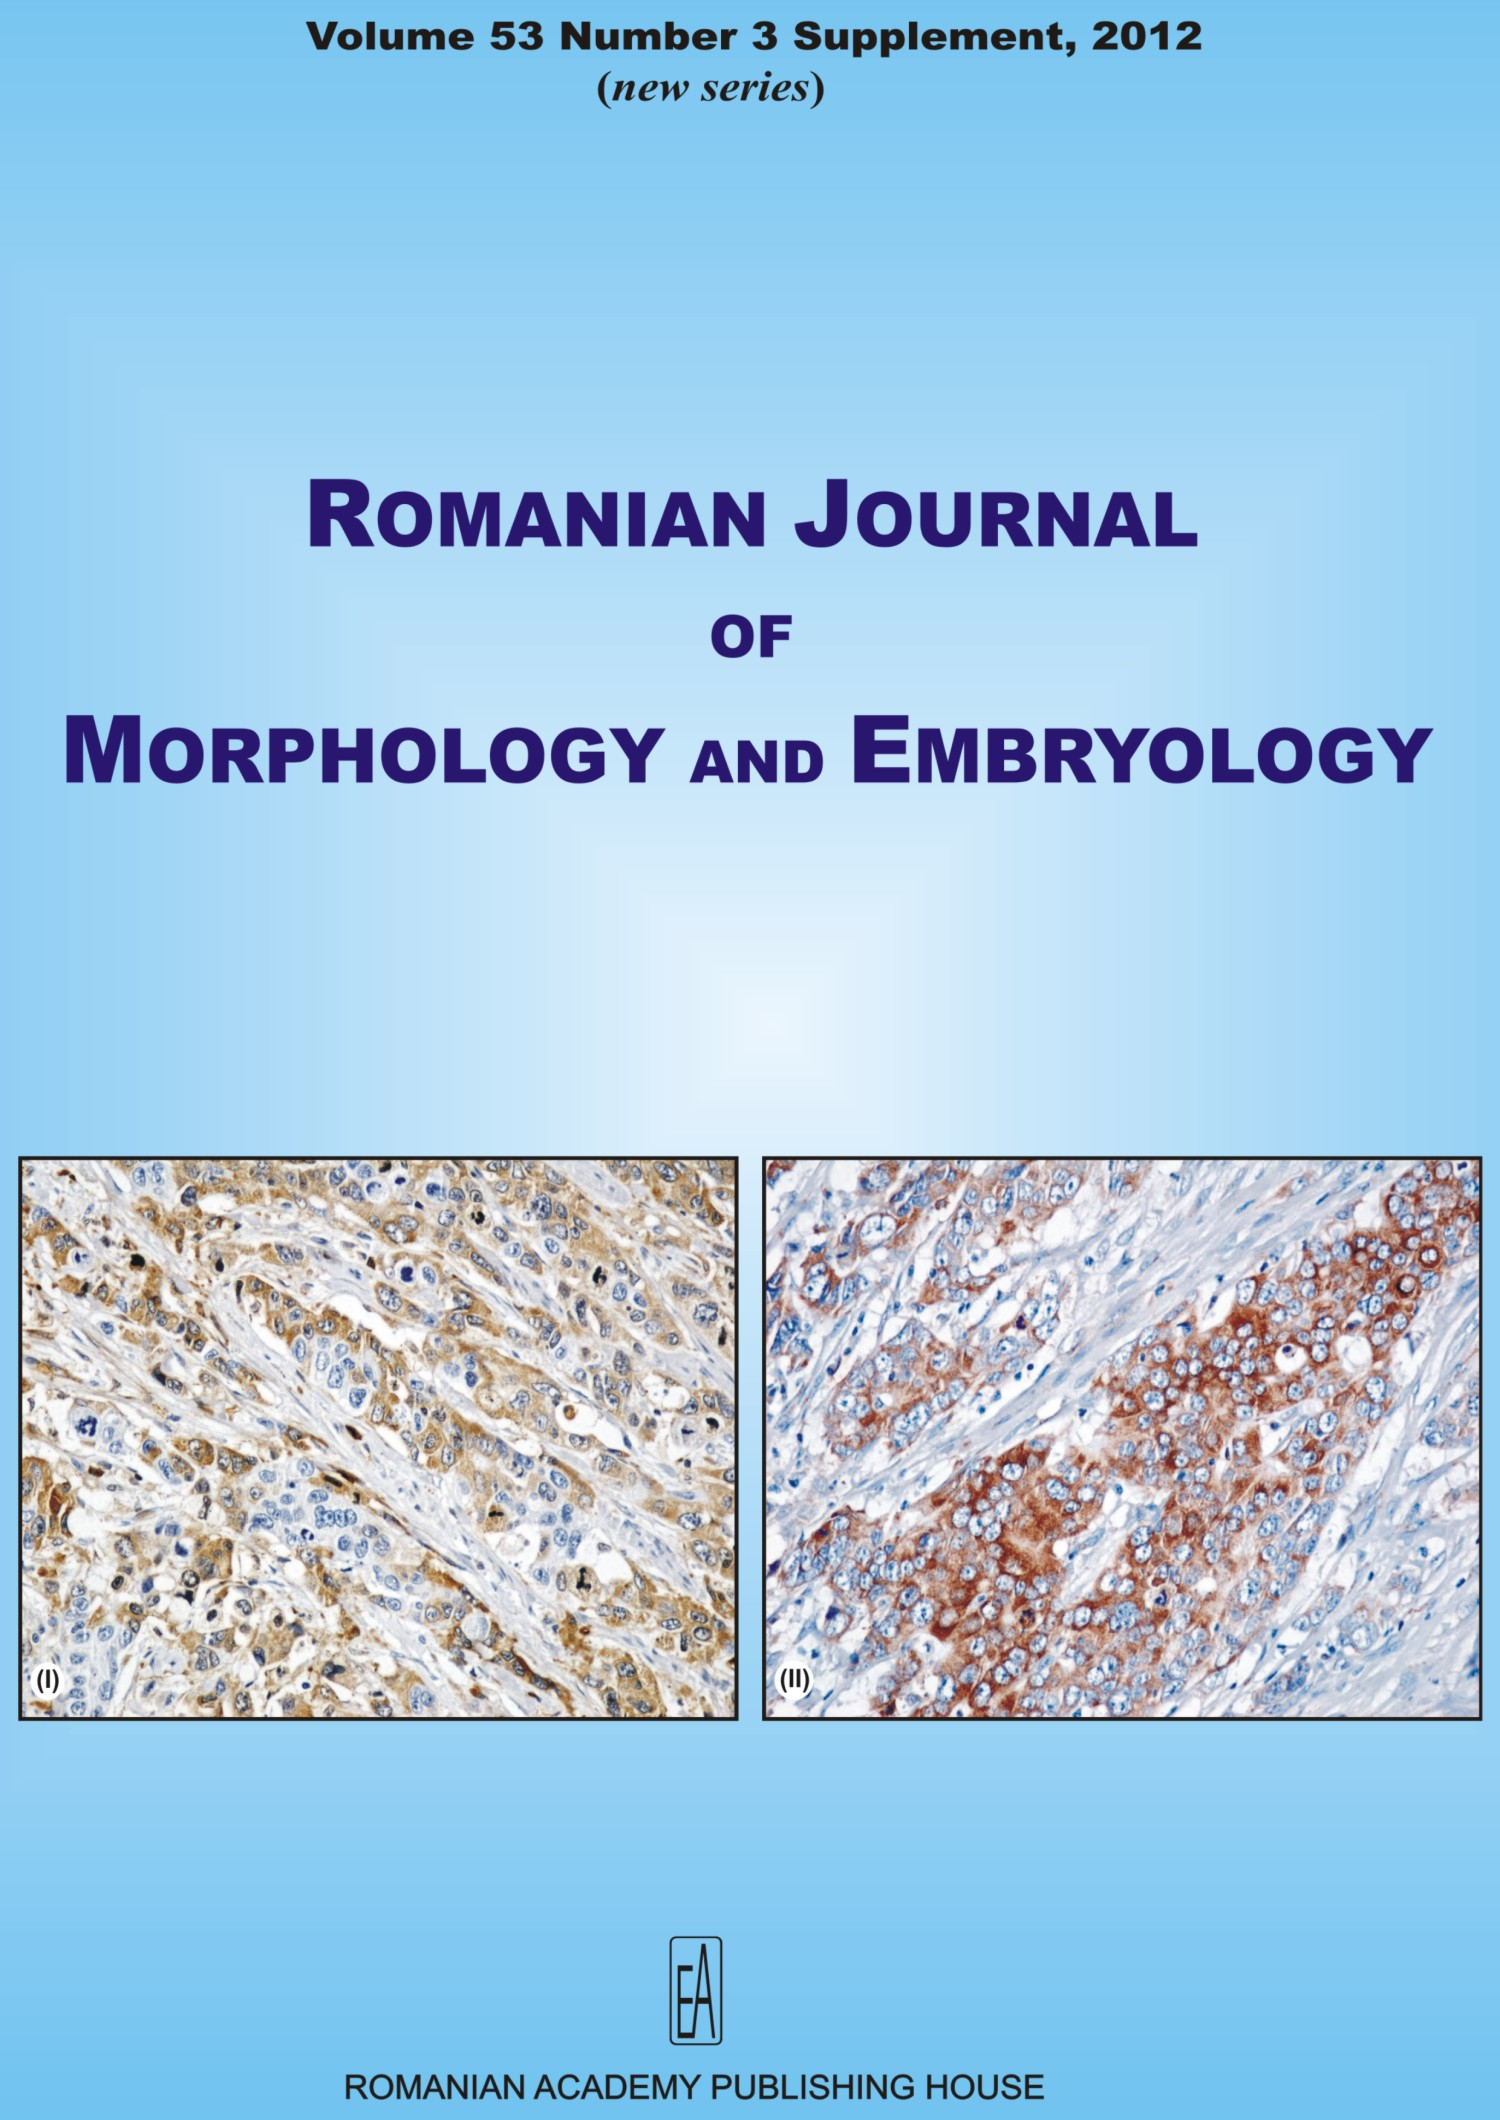 Romanian Journal of Morphology and Embryology, vol. 53 no. 3Suppl, 2012